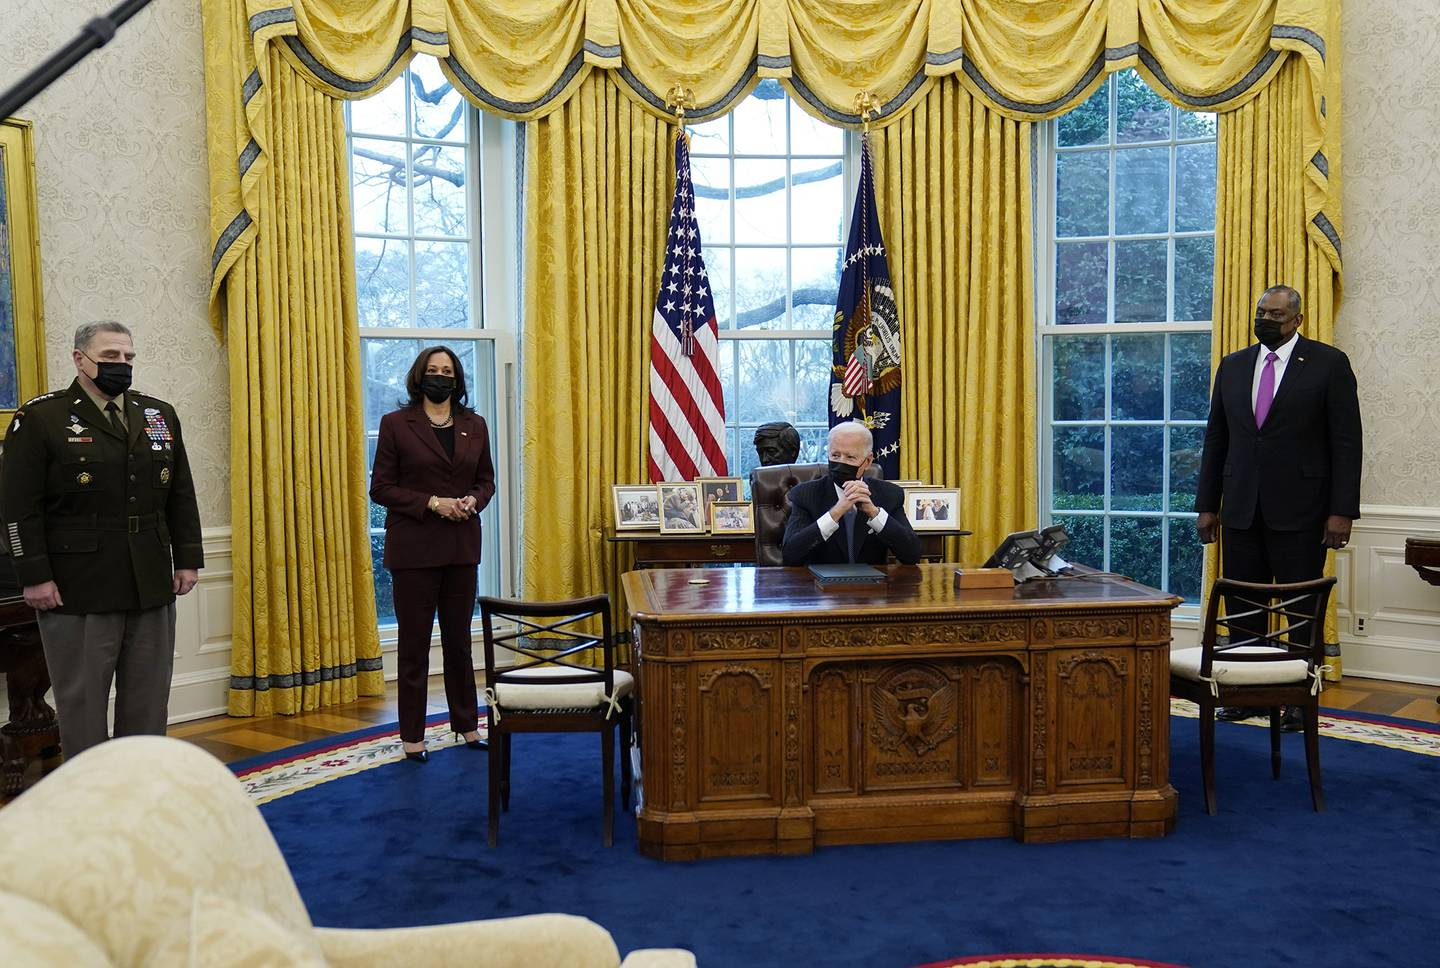 President Joe Biden meets with Secretary of Defense Lloyd Austin, right, Vice President Kamala Harris, and Gen. Mark Milley, chairman of the Joint Chiefs of Staff, left, in the Oval Office of the White House, Monday, Jan. 25, 2021, in Washington.